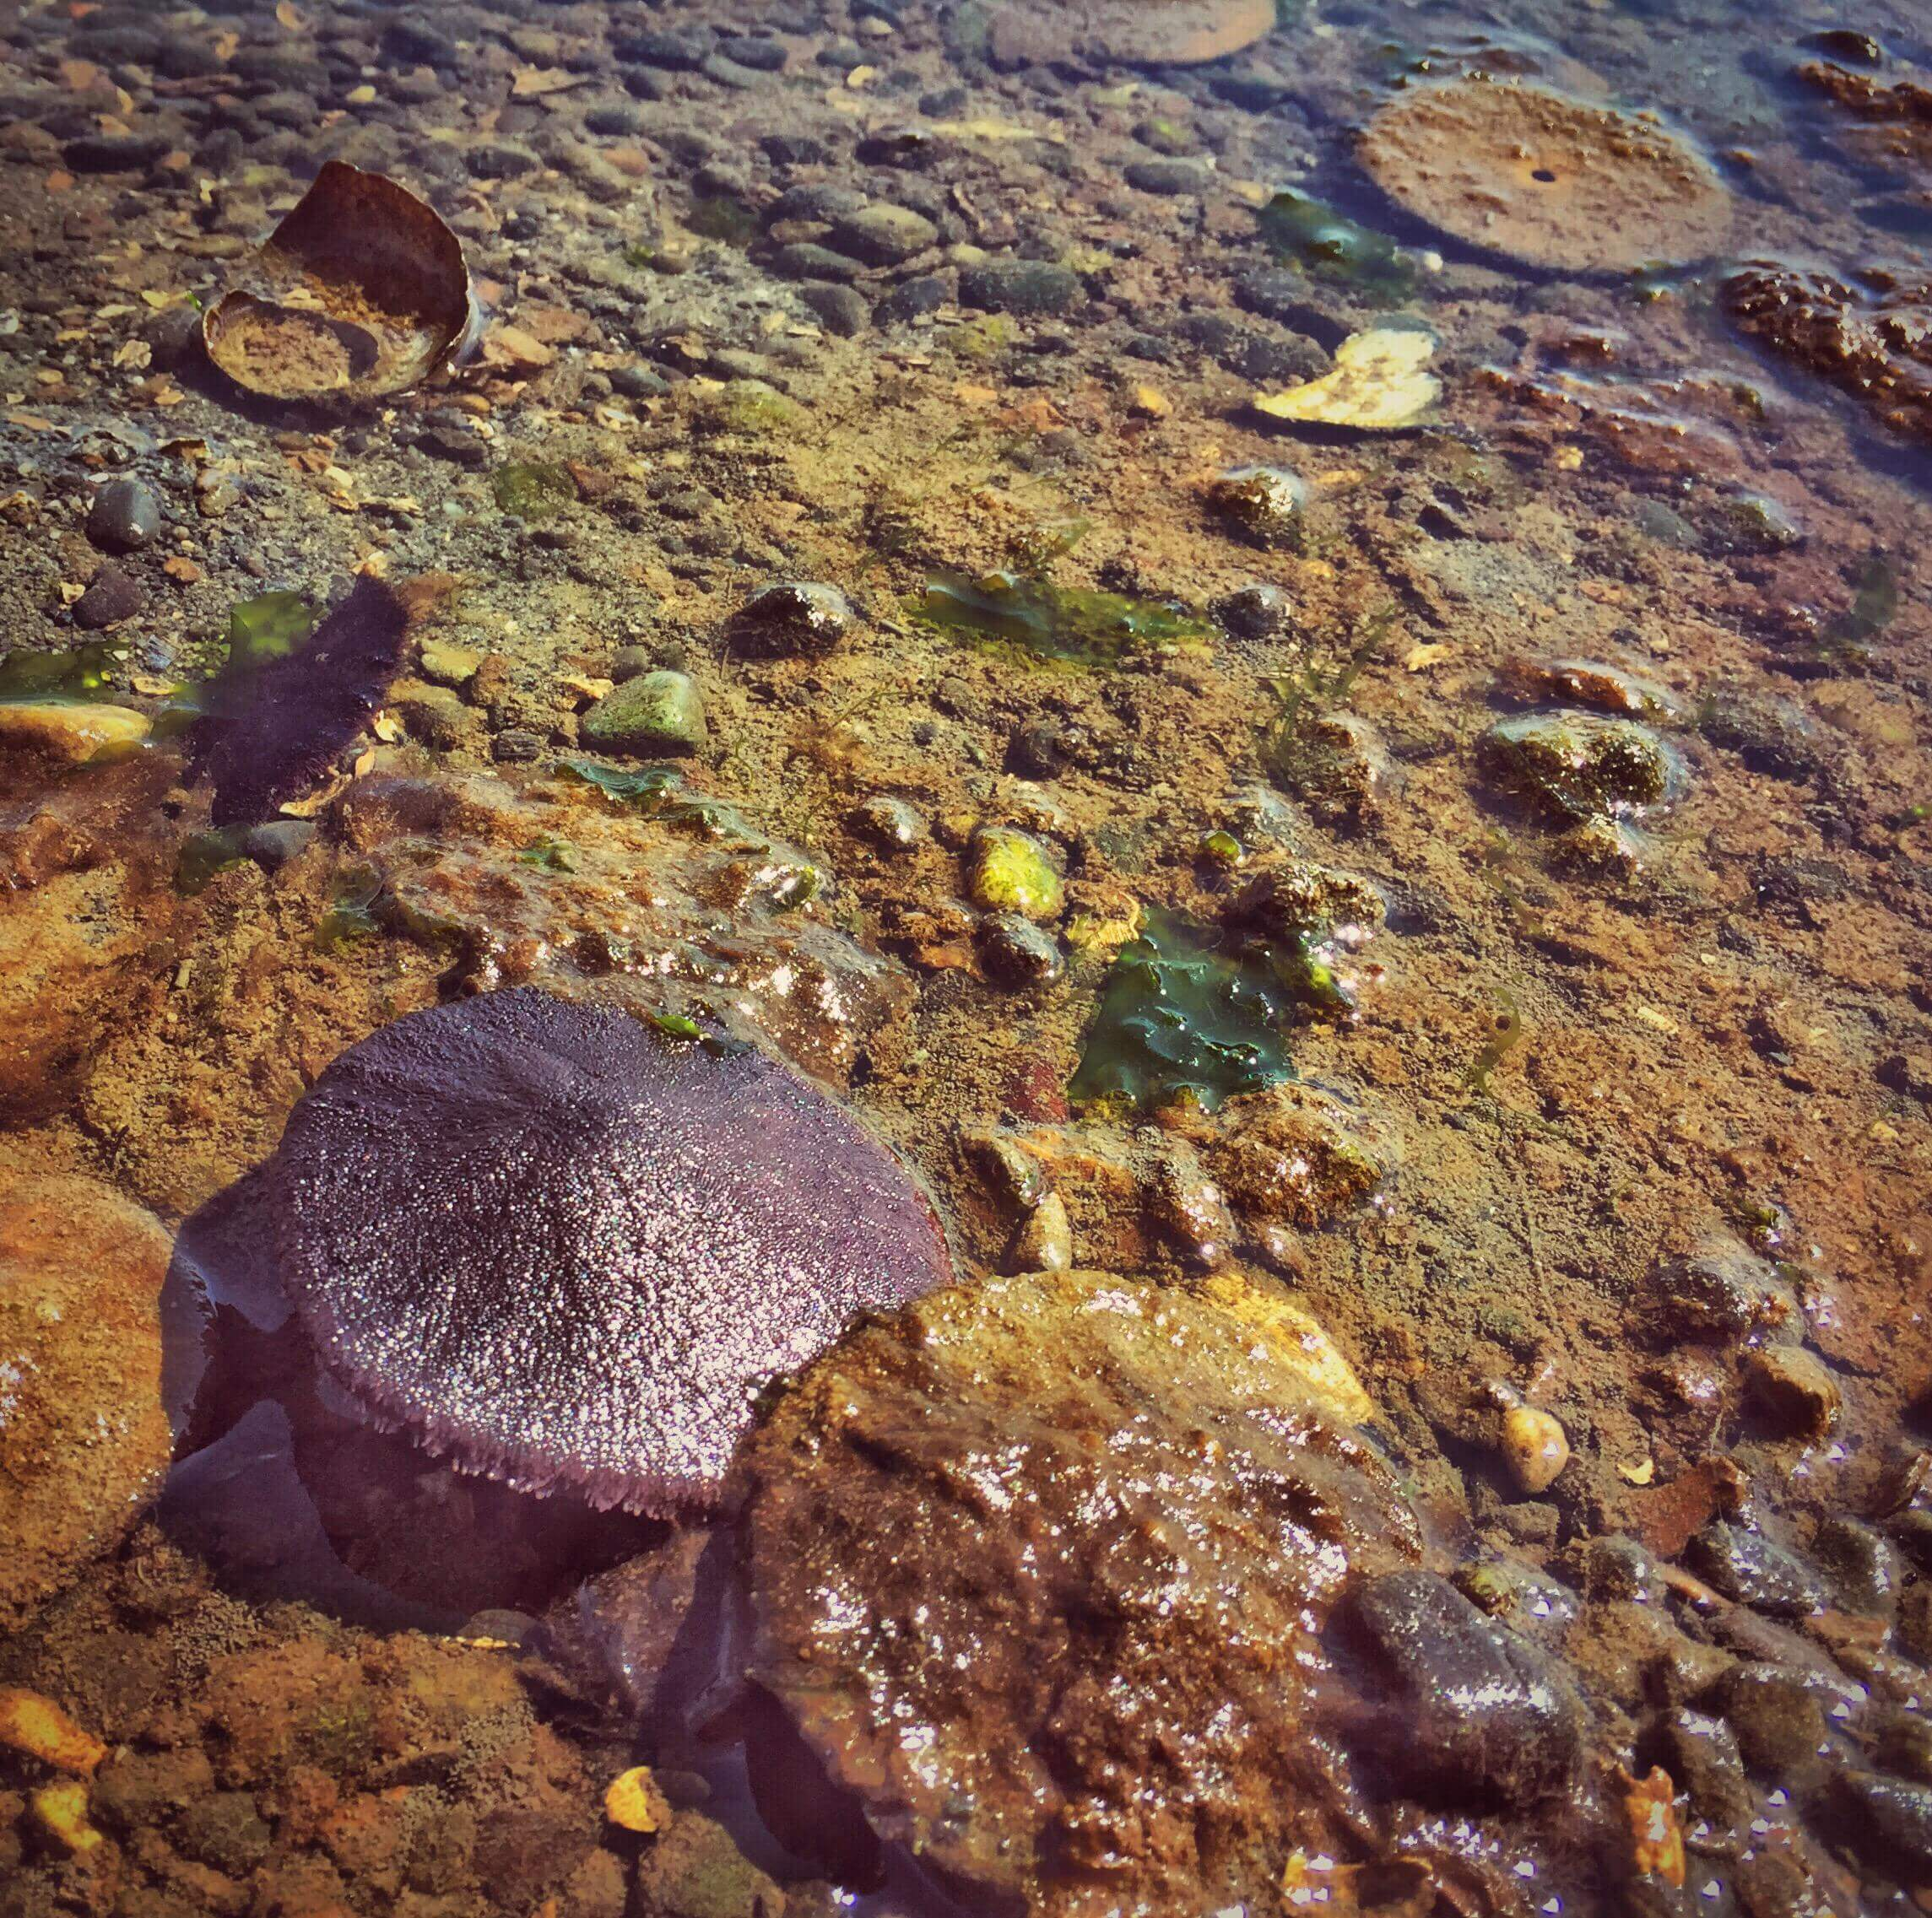 A sand dollar in the intertidal